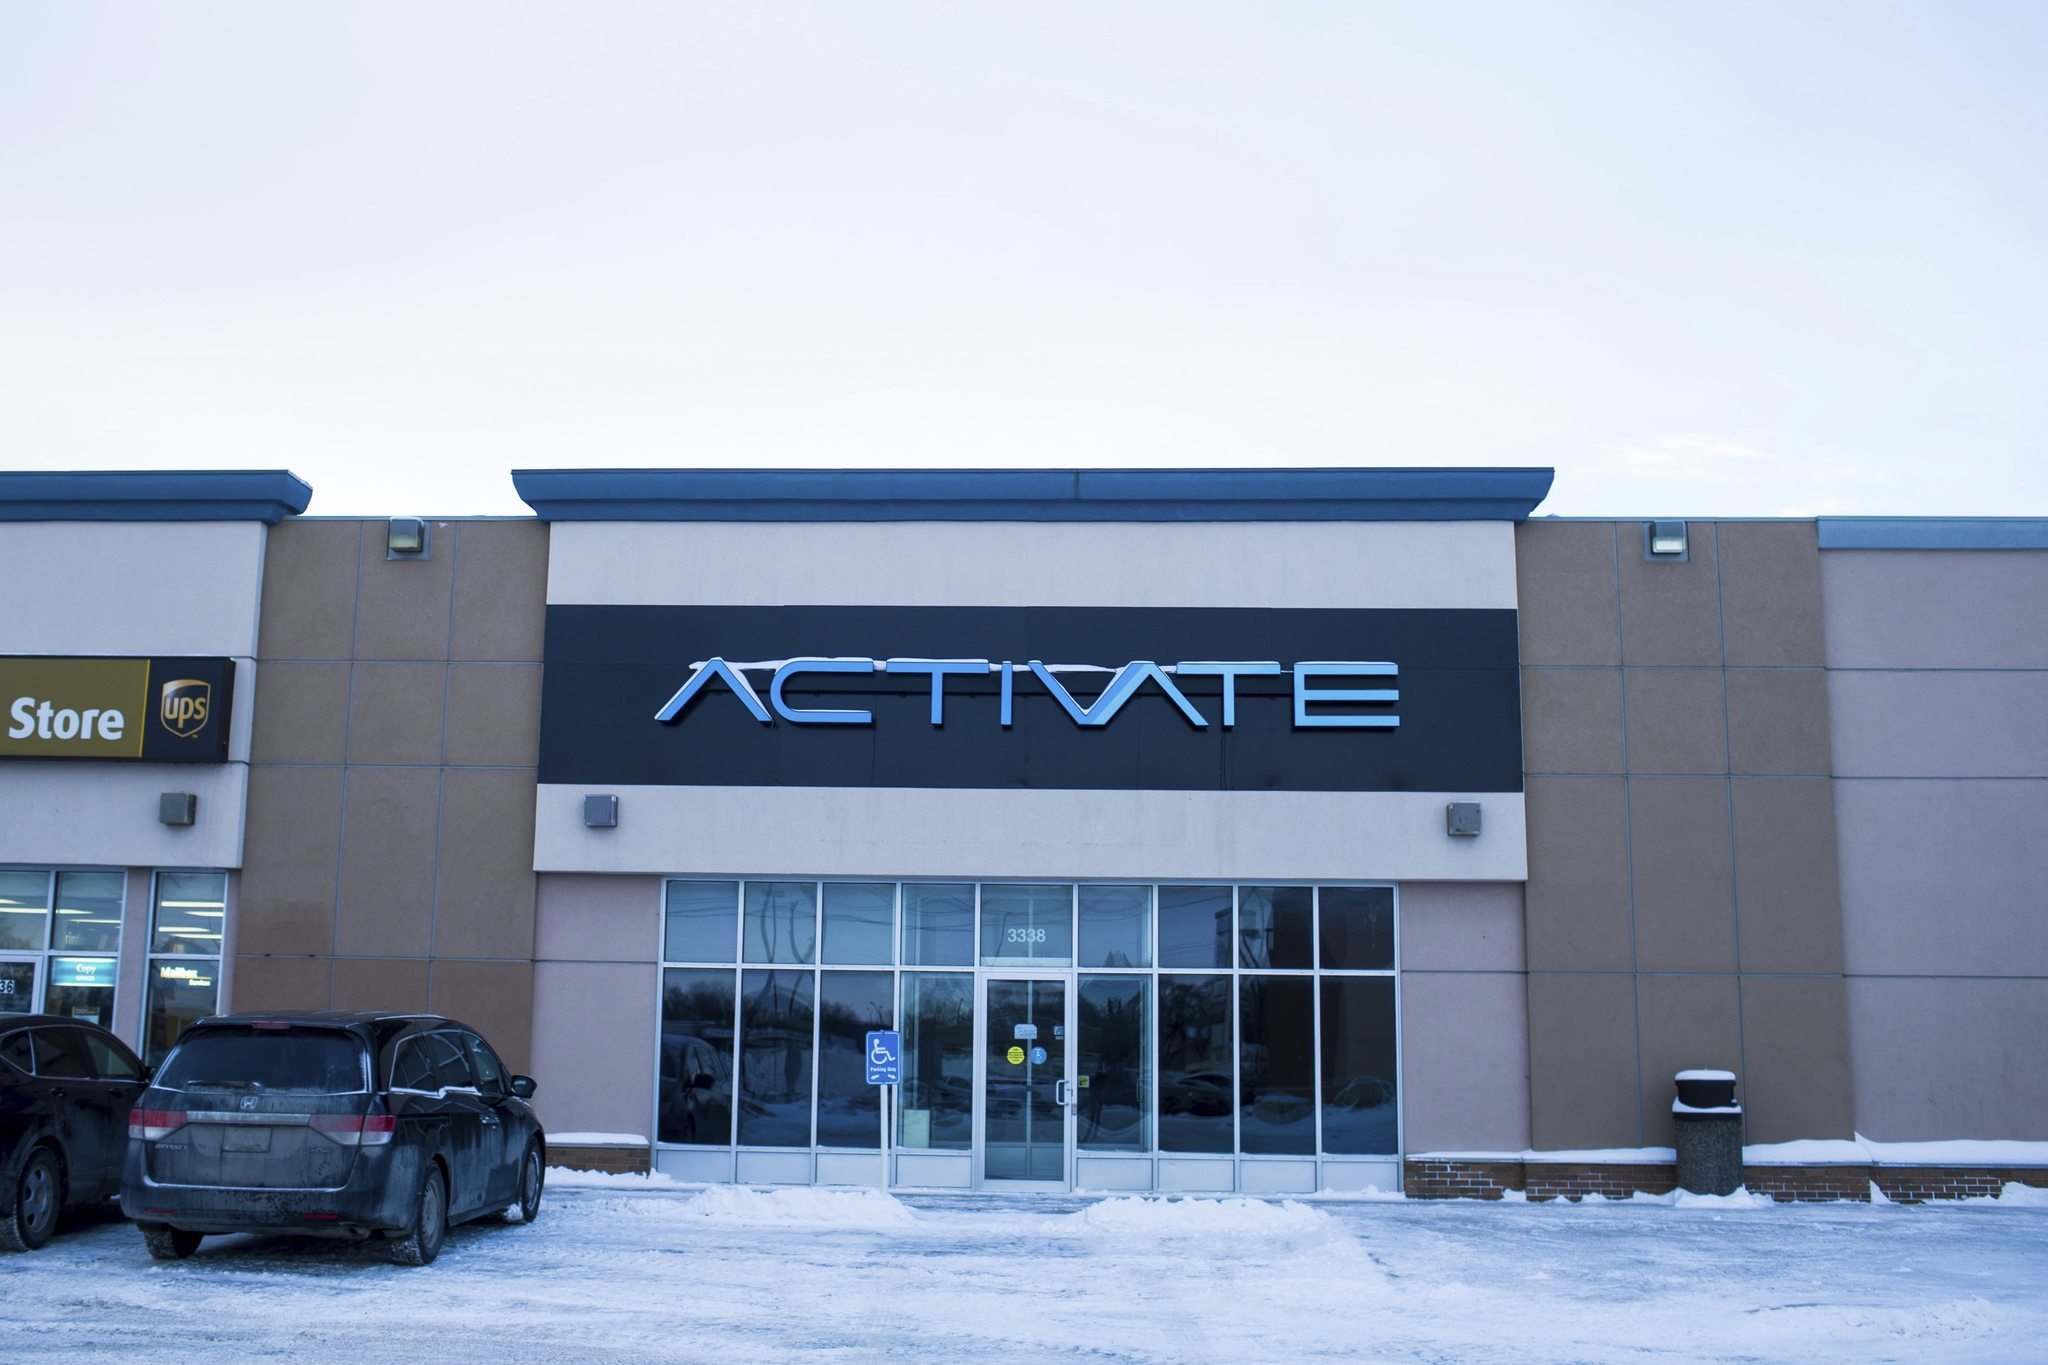 It doens't look like much from the outside, but inside Activate Games is a new gaming experience. (Mikaela MacKenzie / Winnipeg Free Press)